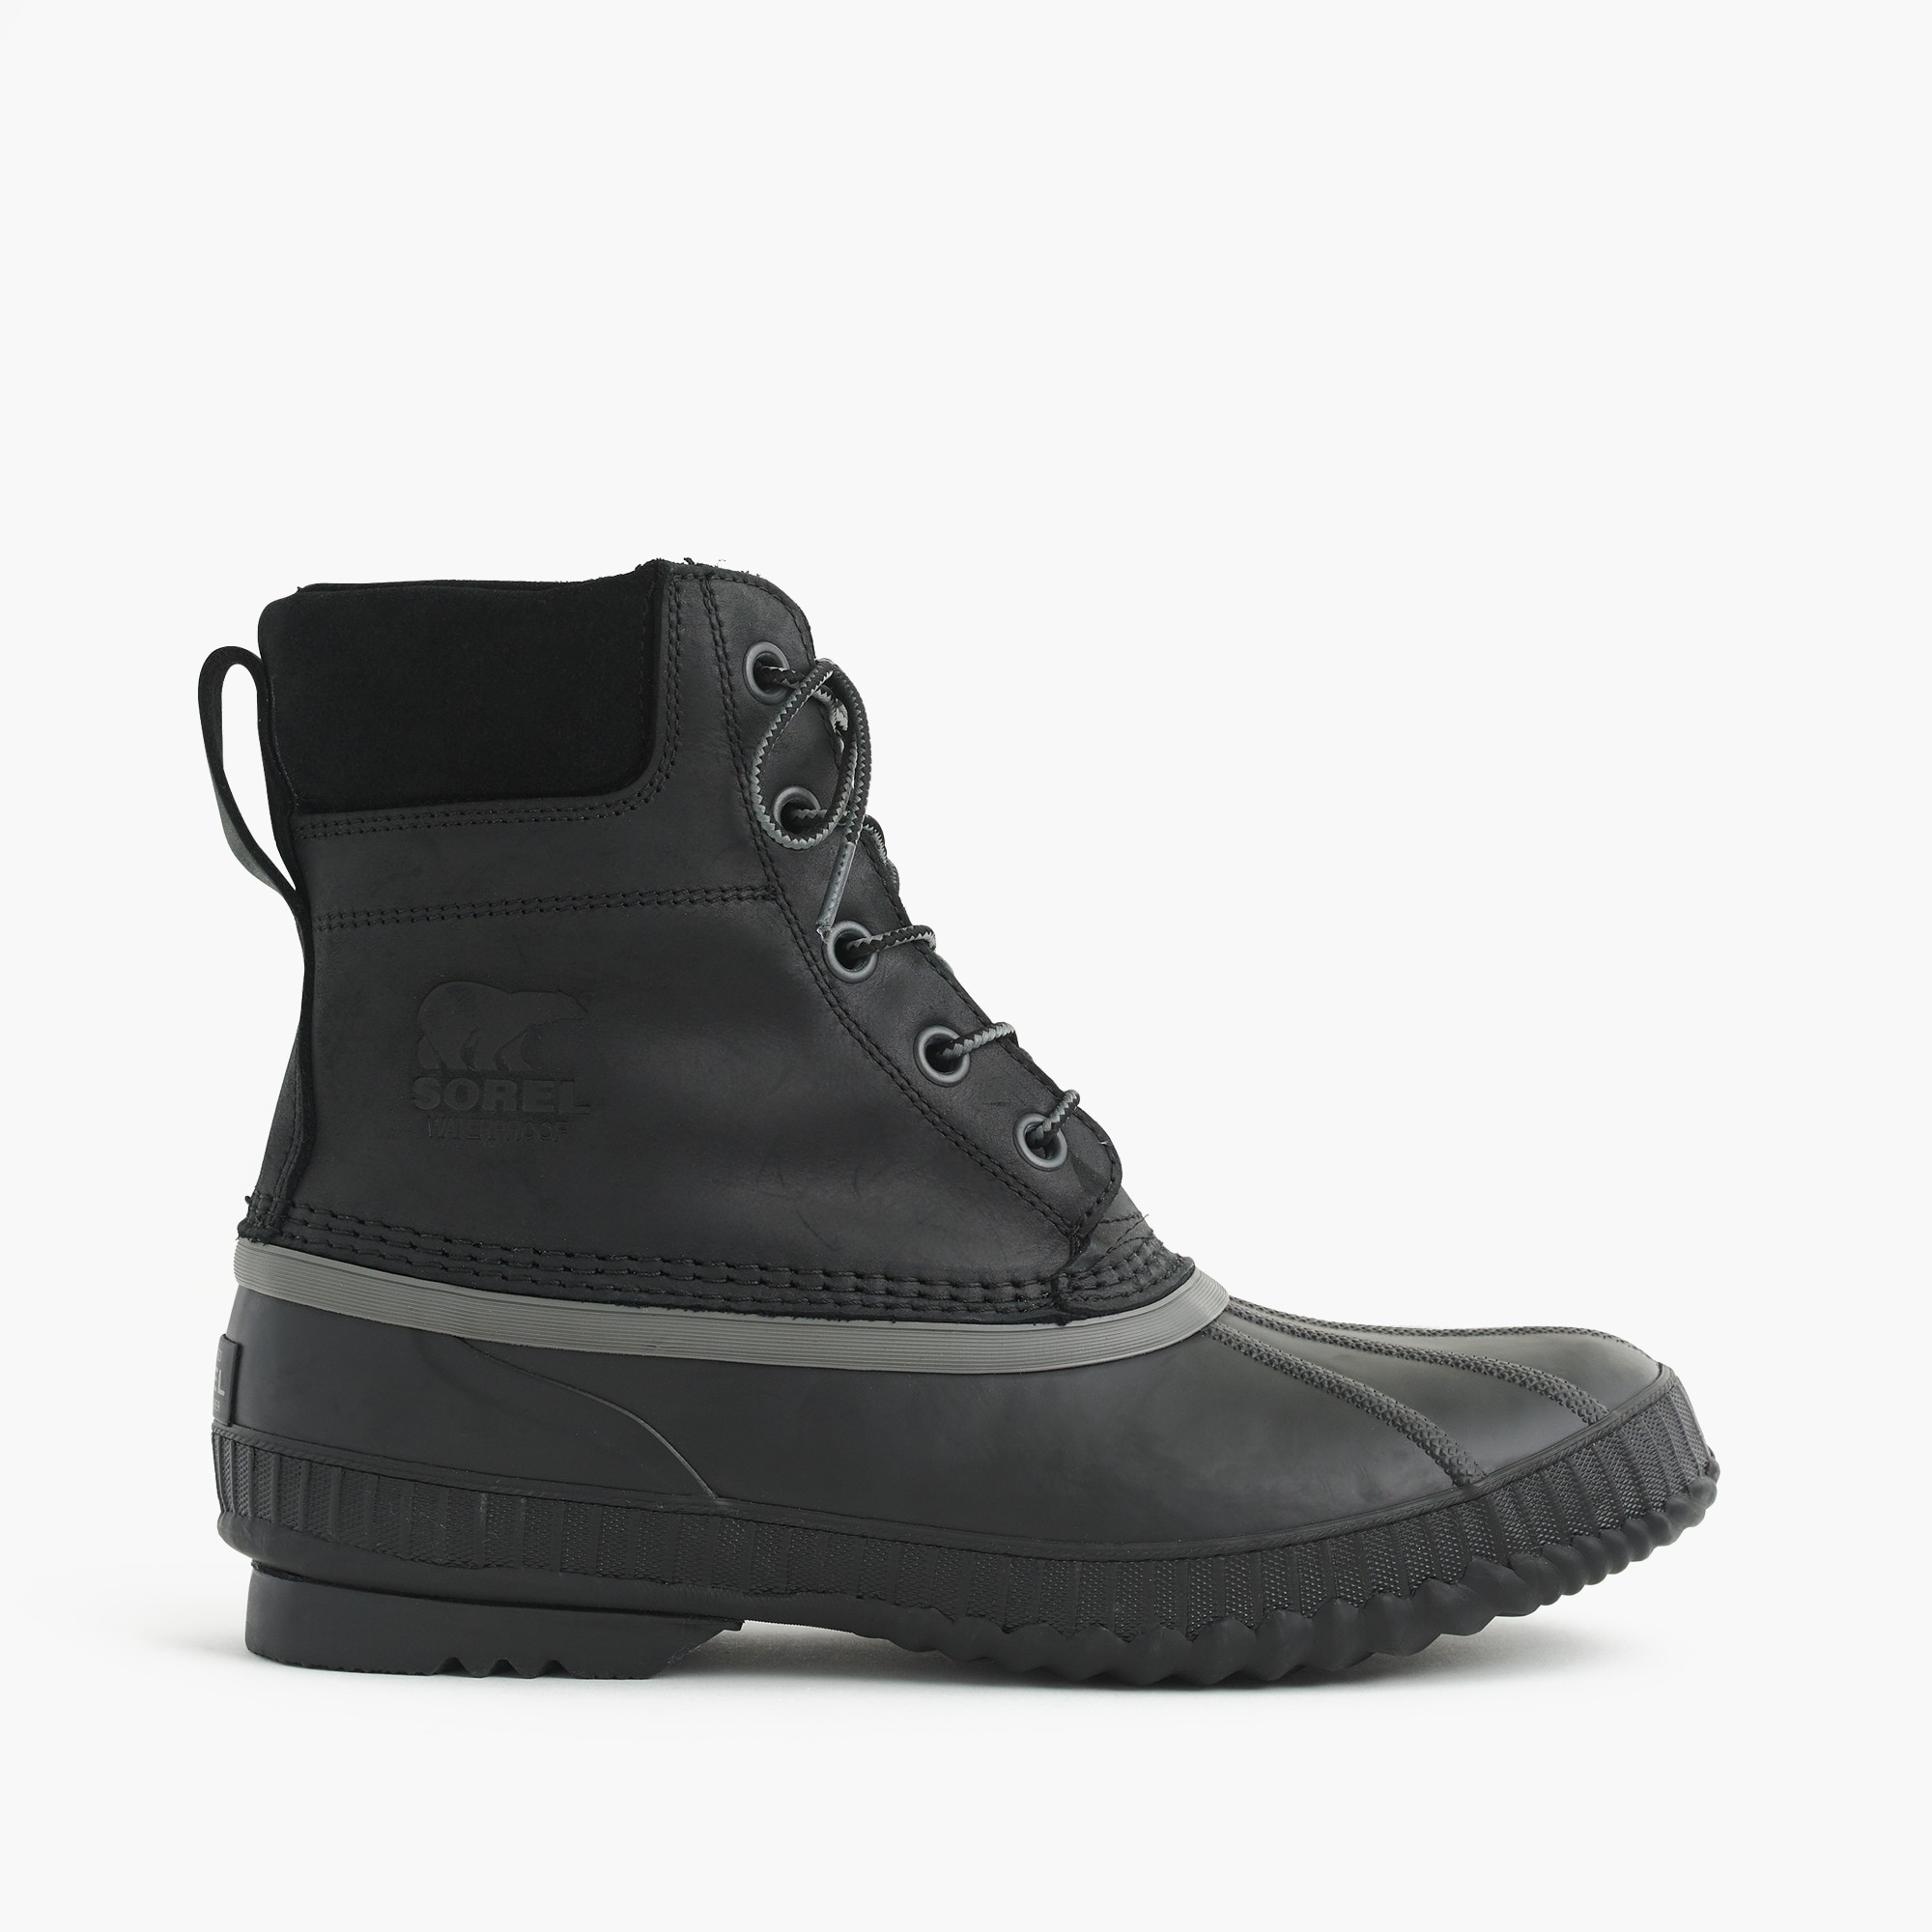 mens Sorel® Cheyanne™ boots in black